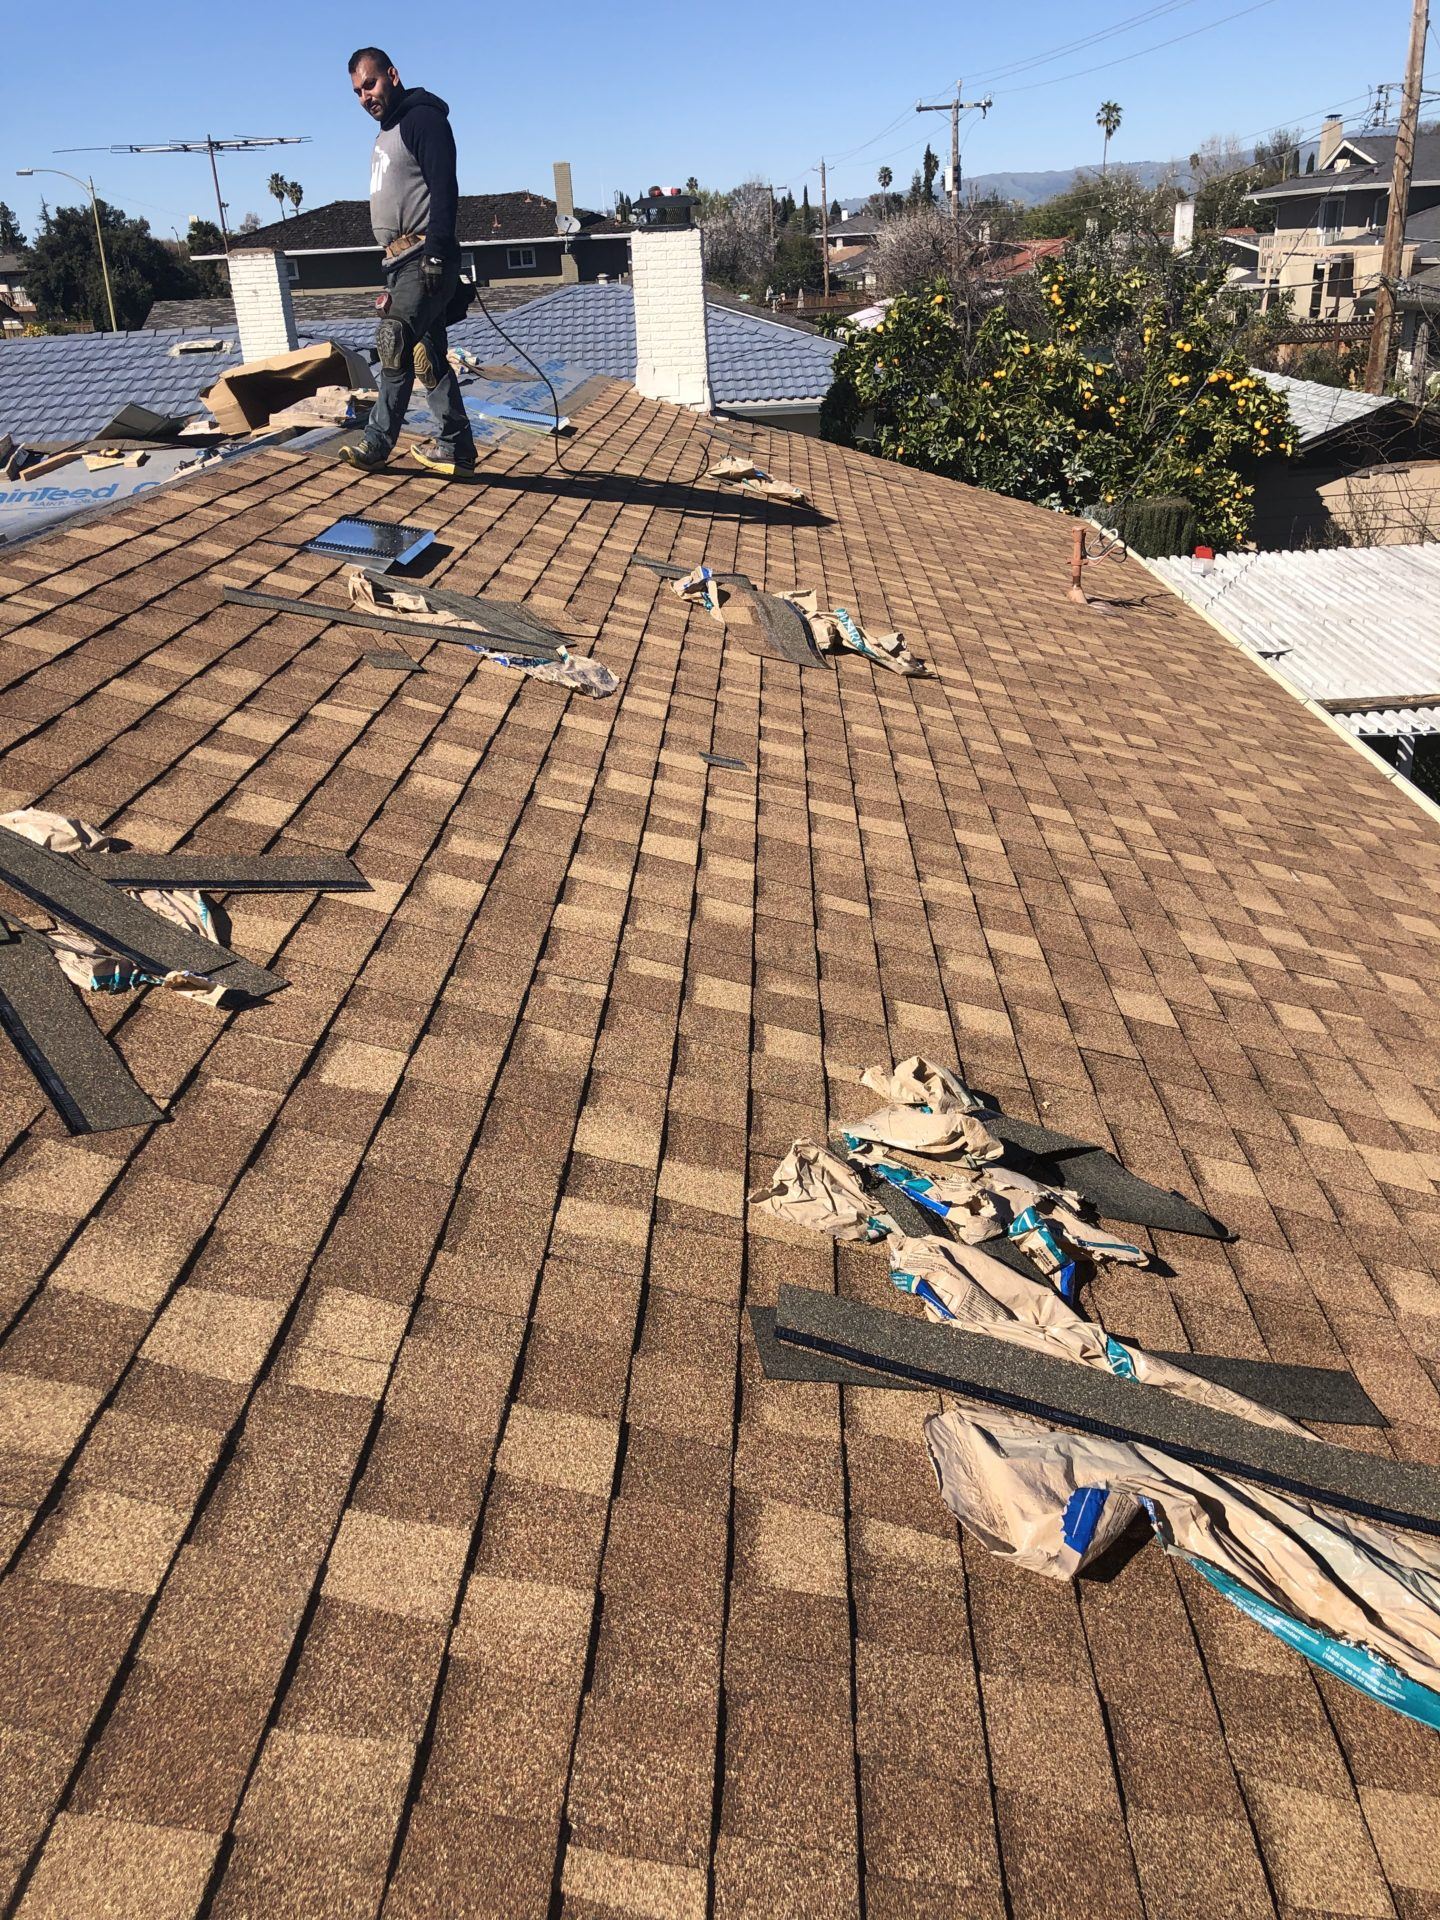 roof repairs being done on a residential roof in morgan hill